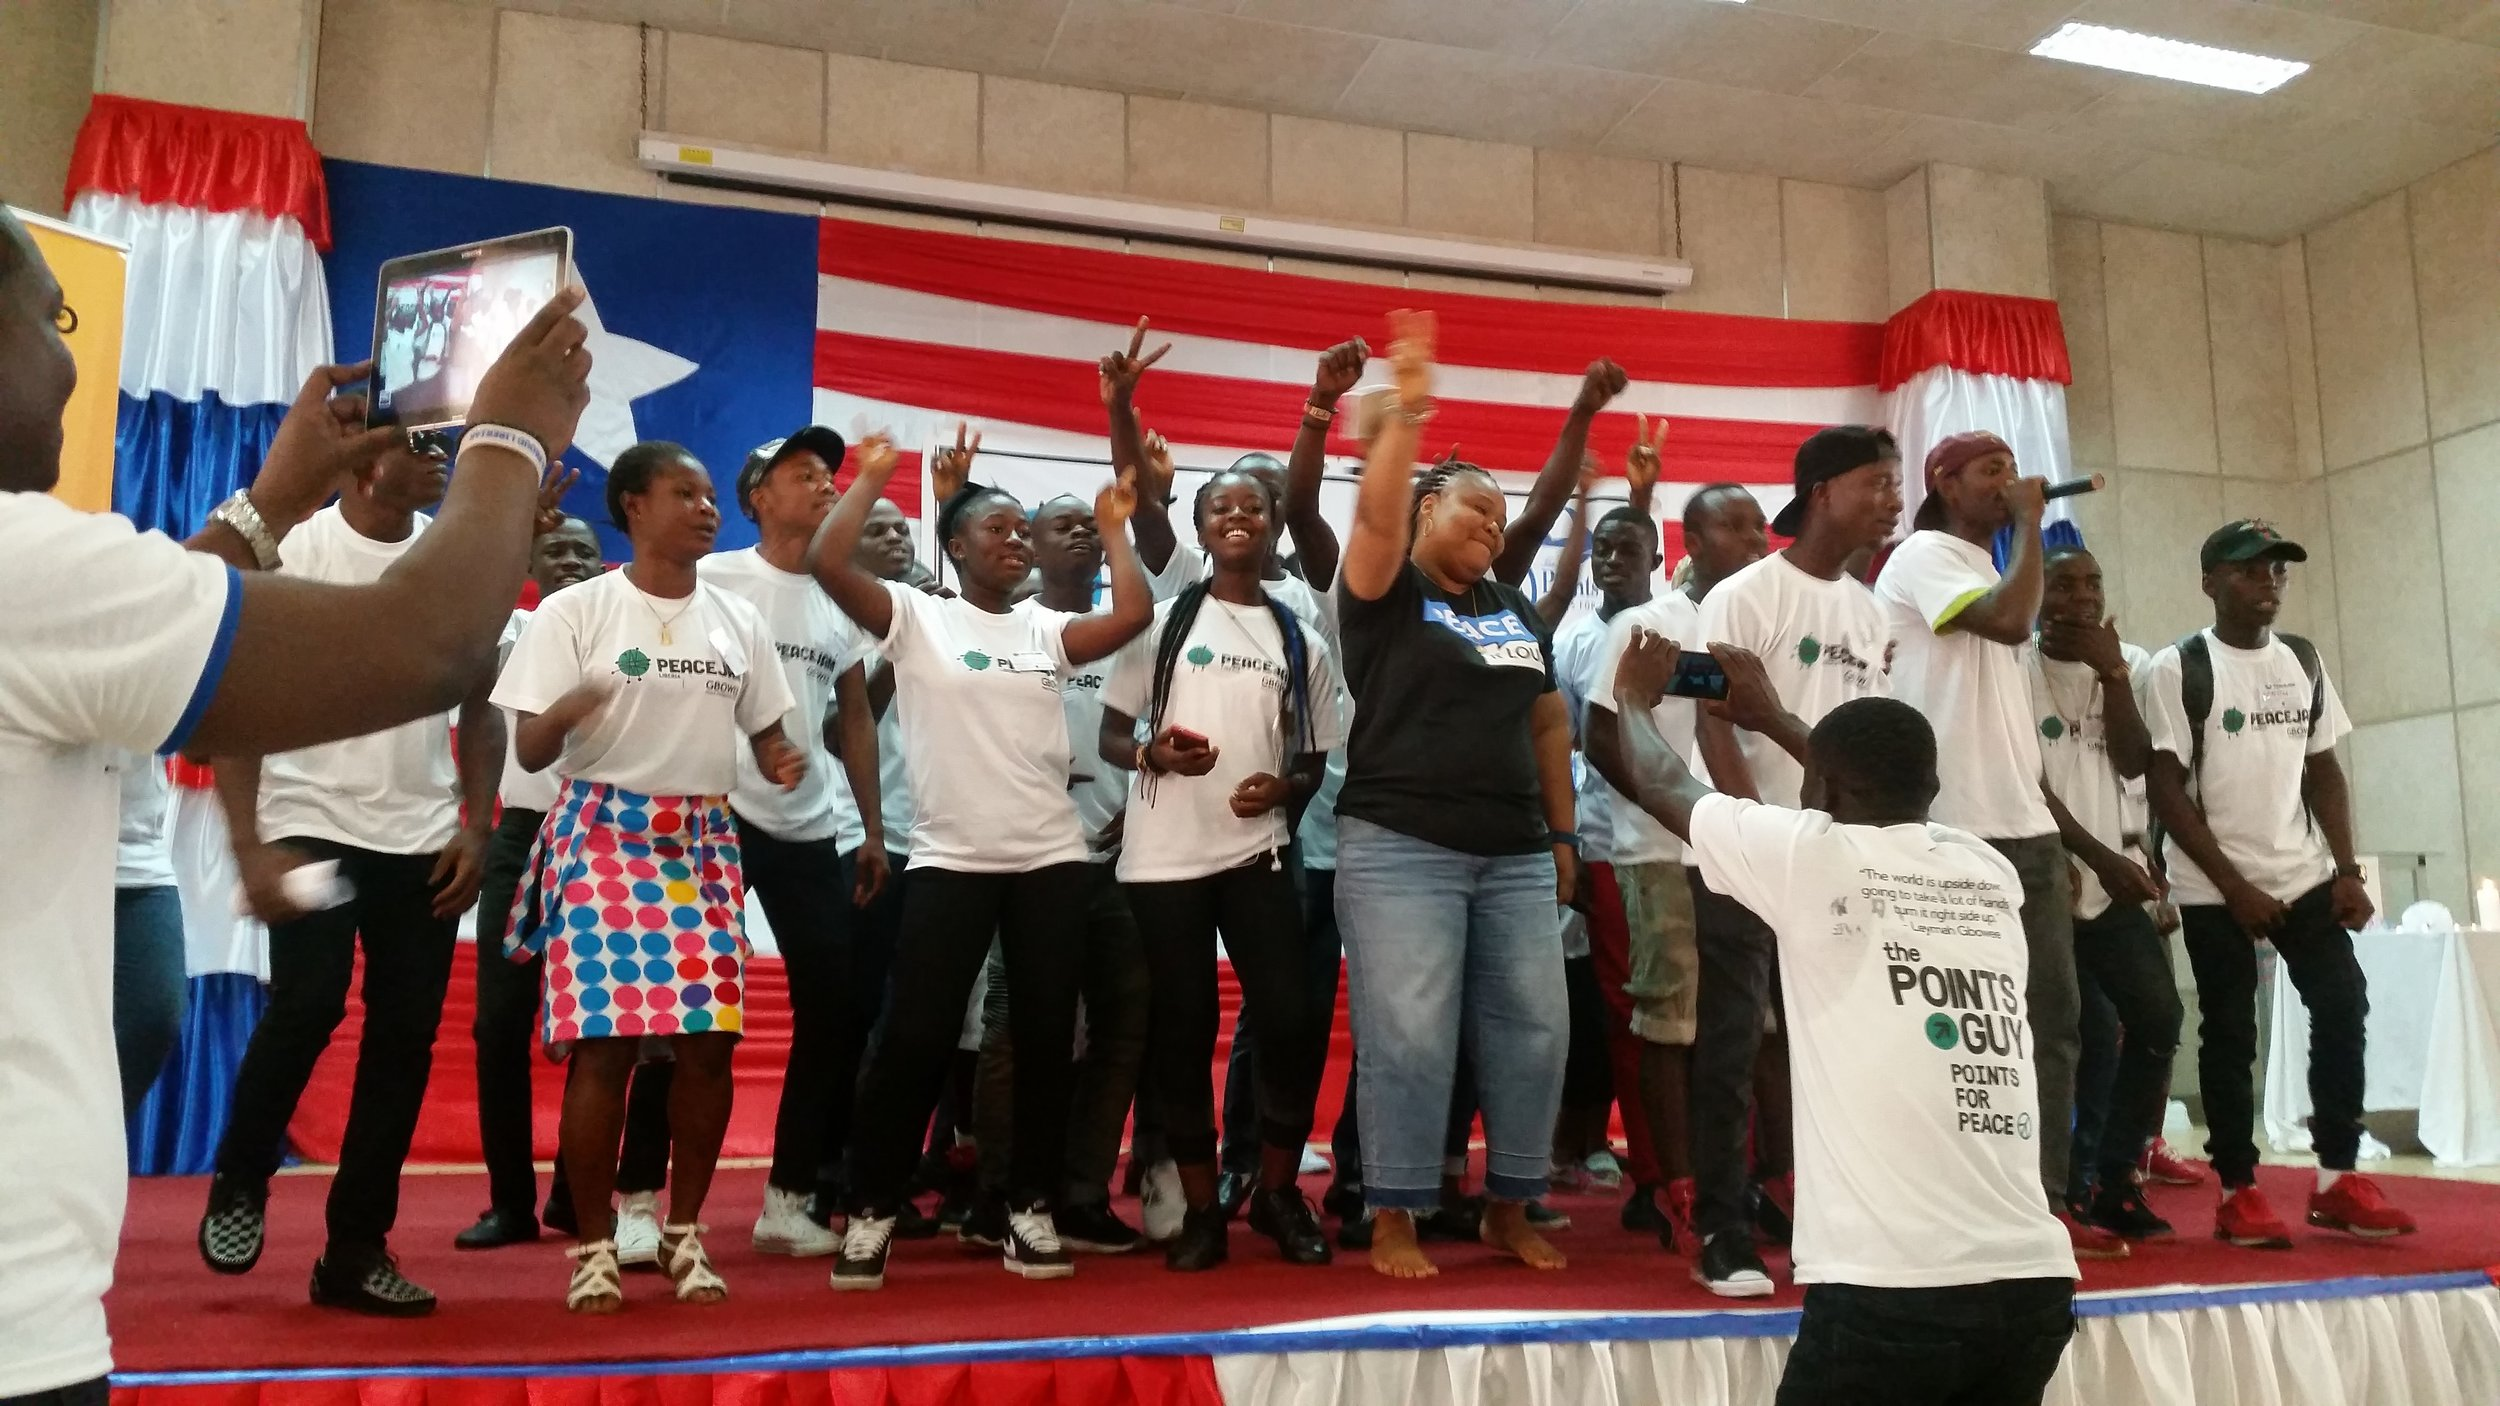 Work With Us - Help us invest in women and youth, and build a better future for Liberia, West Africa and the world!